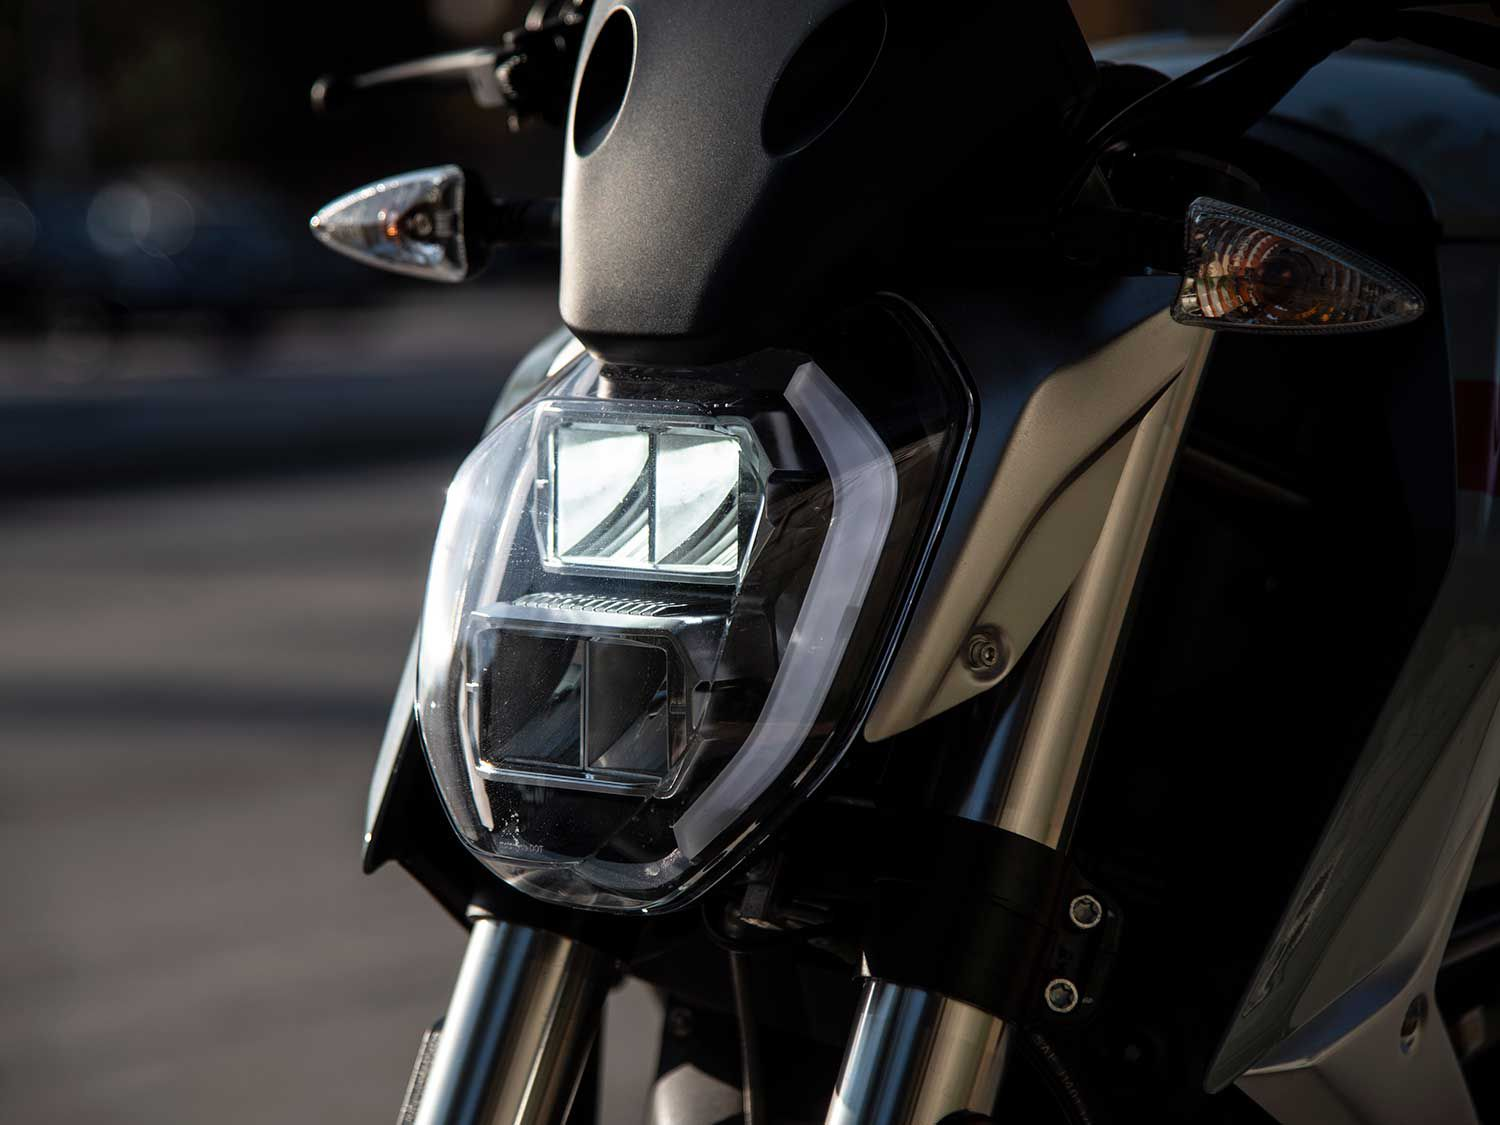 LED headlamps light the way while cutting down on battery depletion.